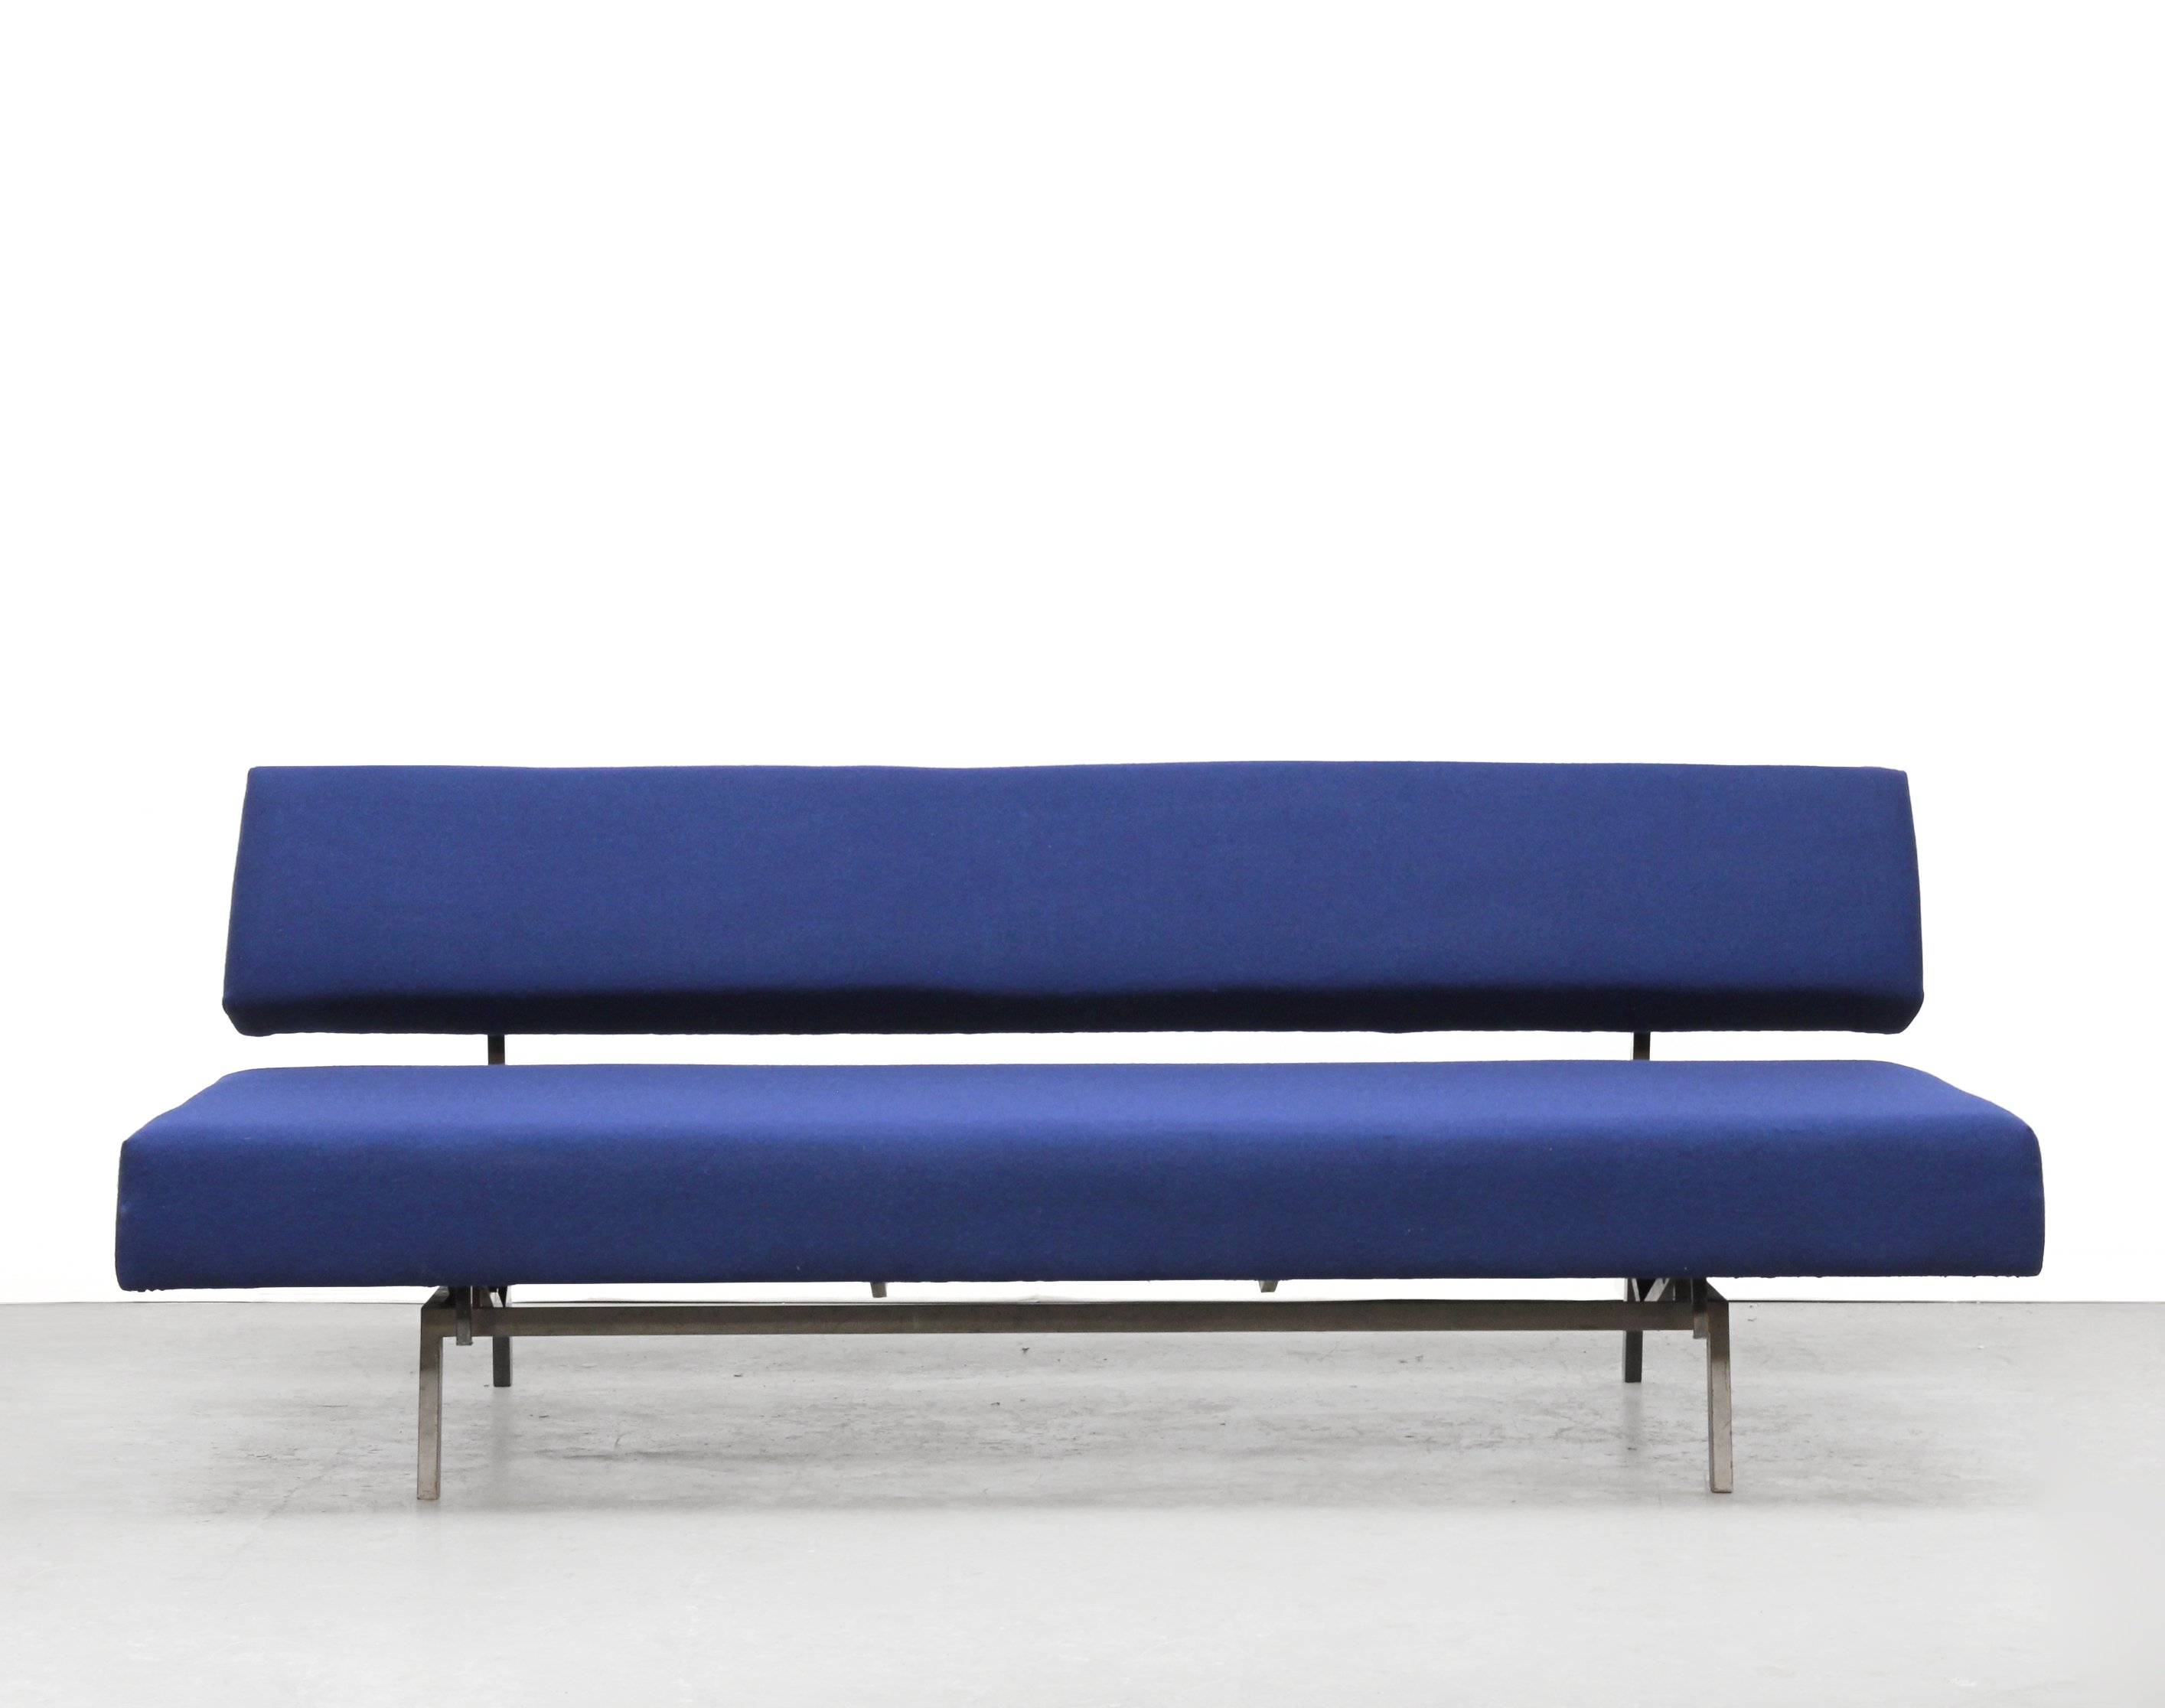 Bettsofa Vintage Vintage Minimalist Dutch Design Sofa Bed 85660